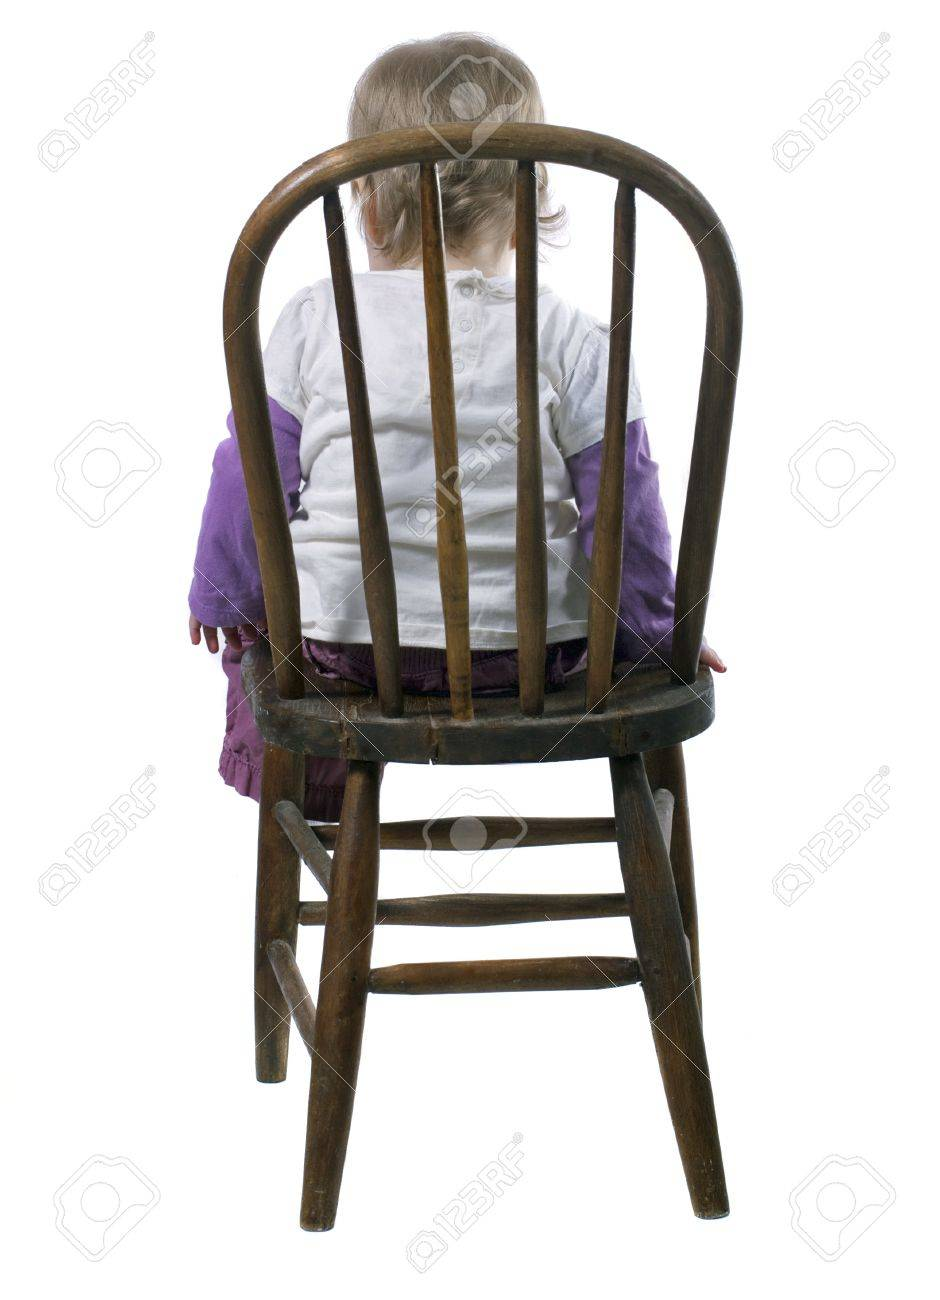 Little Girl Sitting In A Time Out Chair Stock Photo Picture And